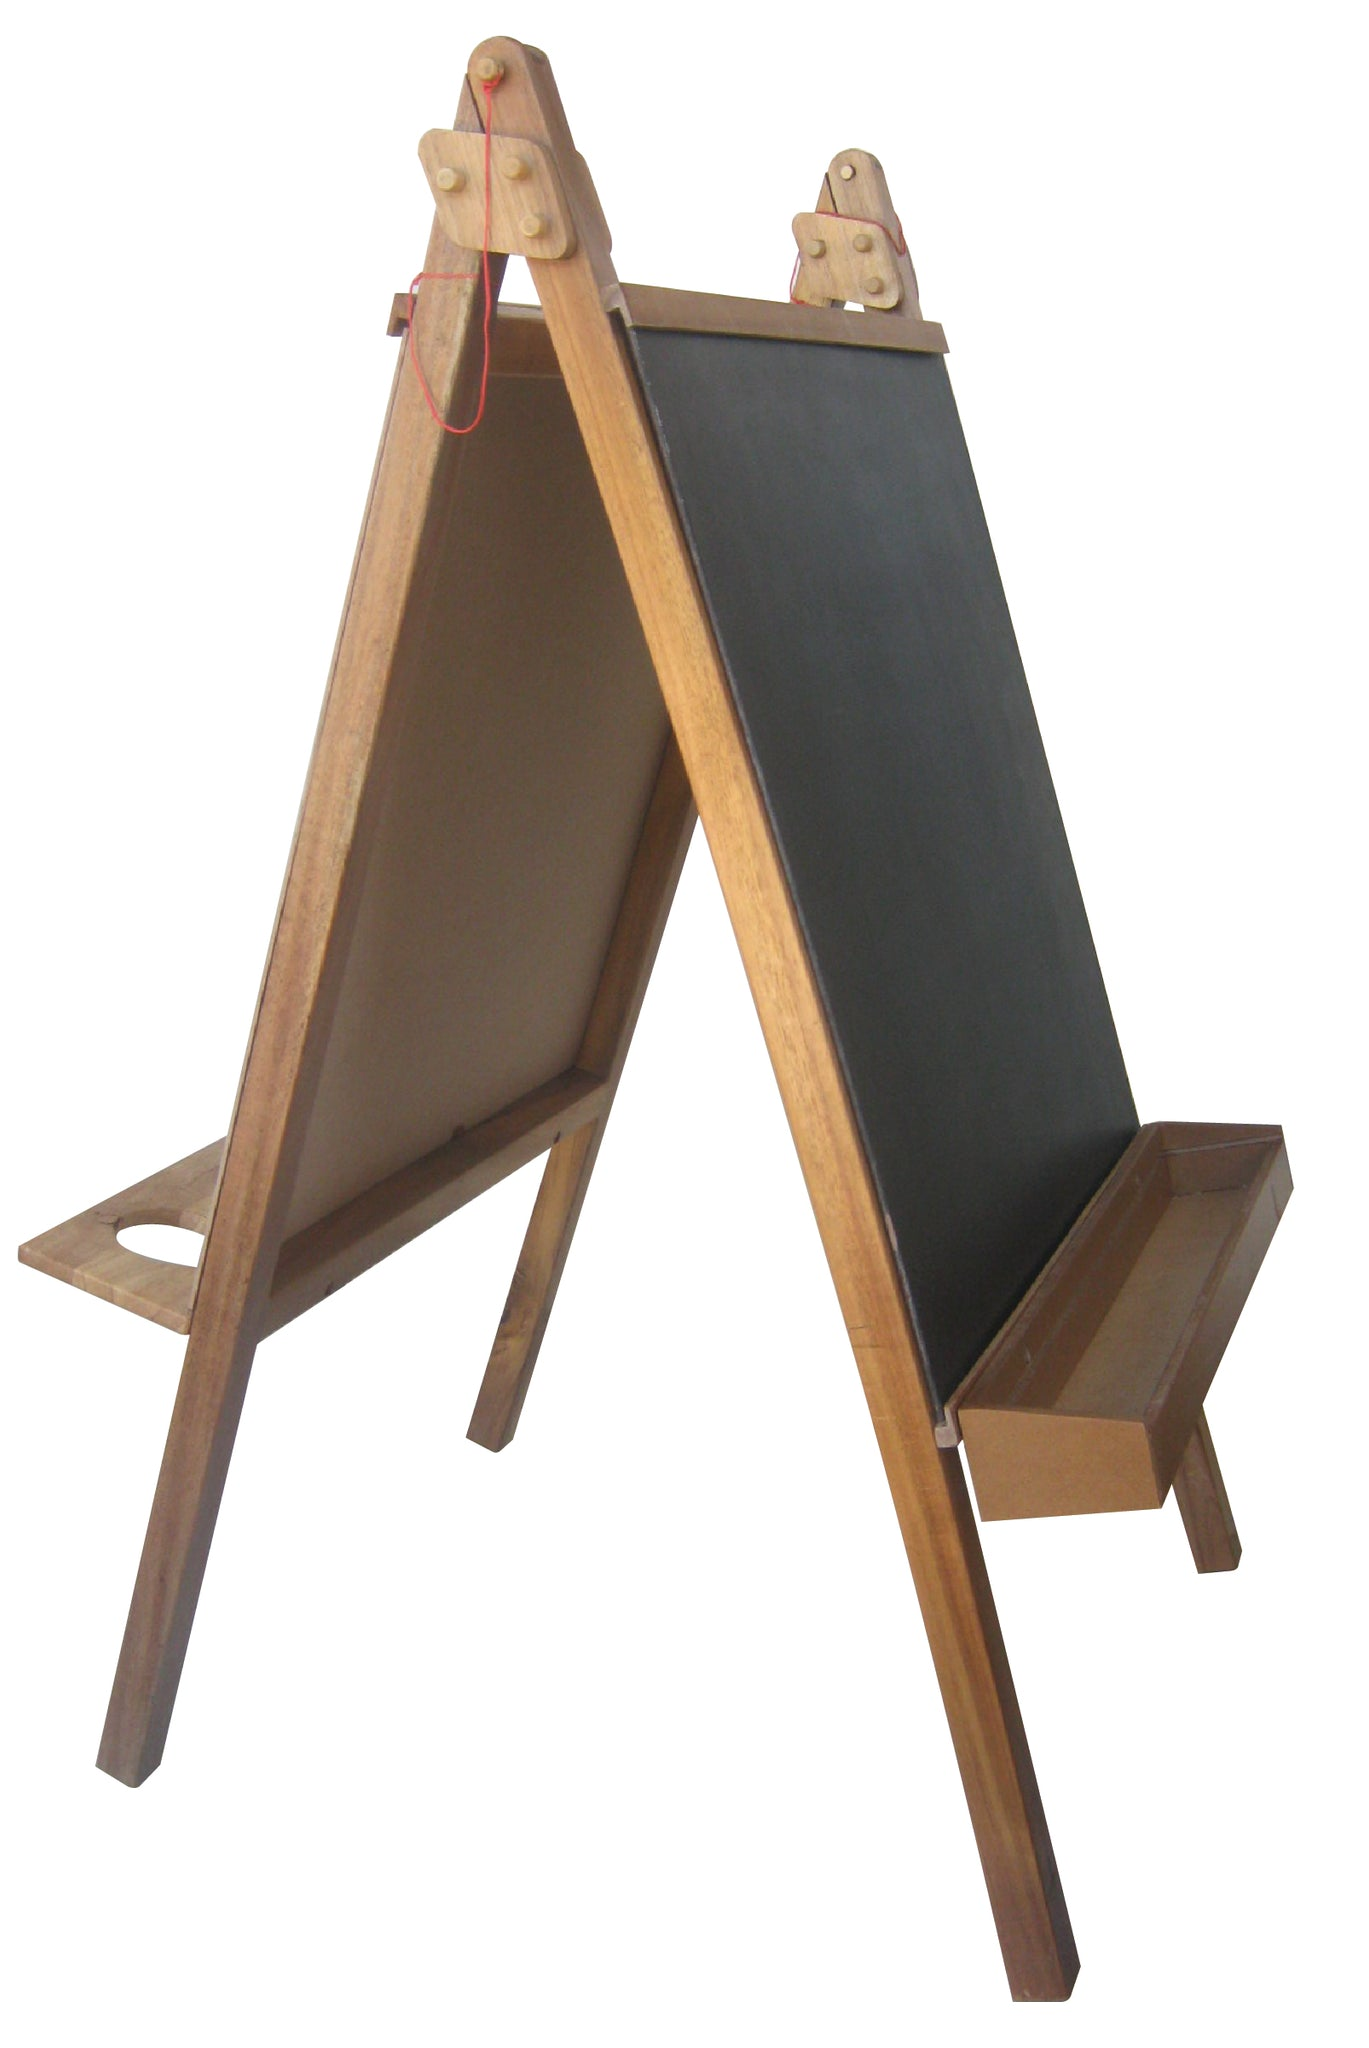 5 in 1 Easel by Q Toys